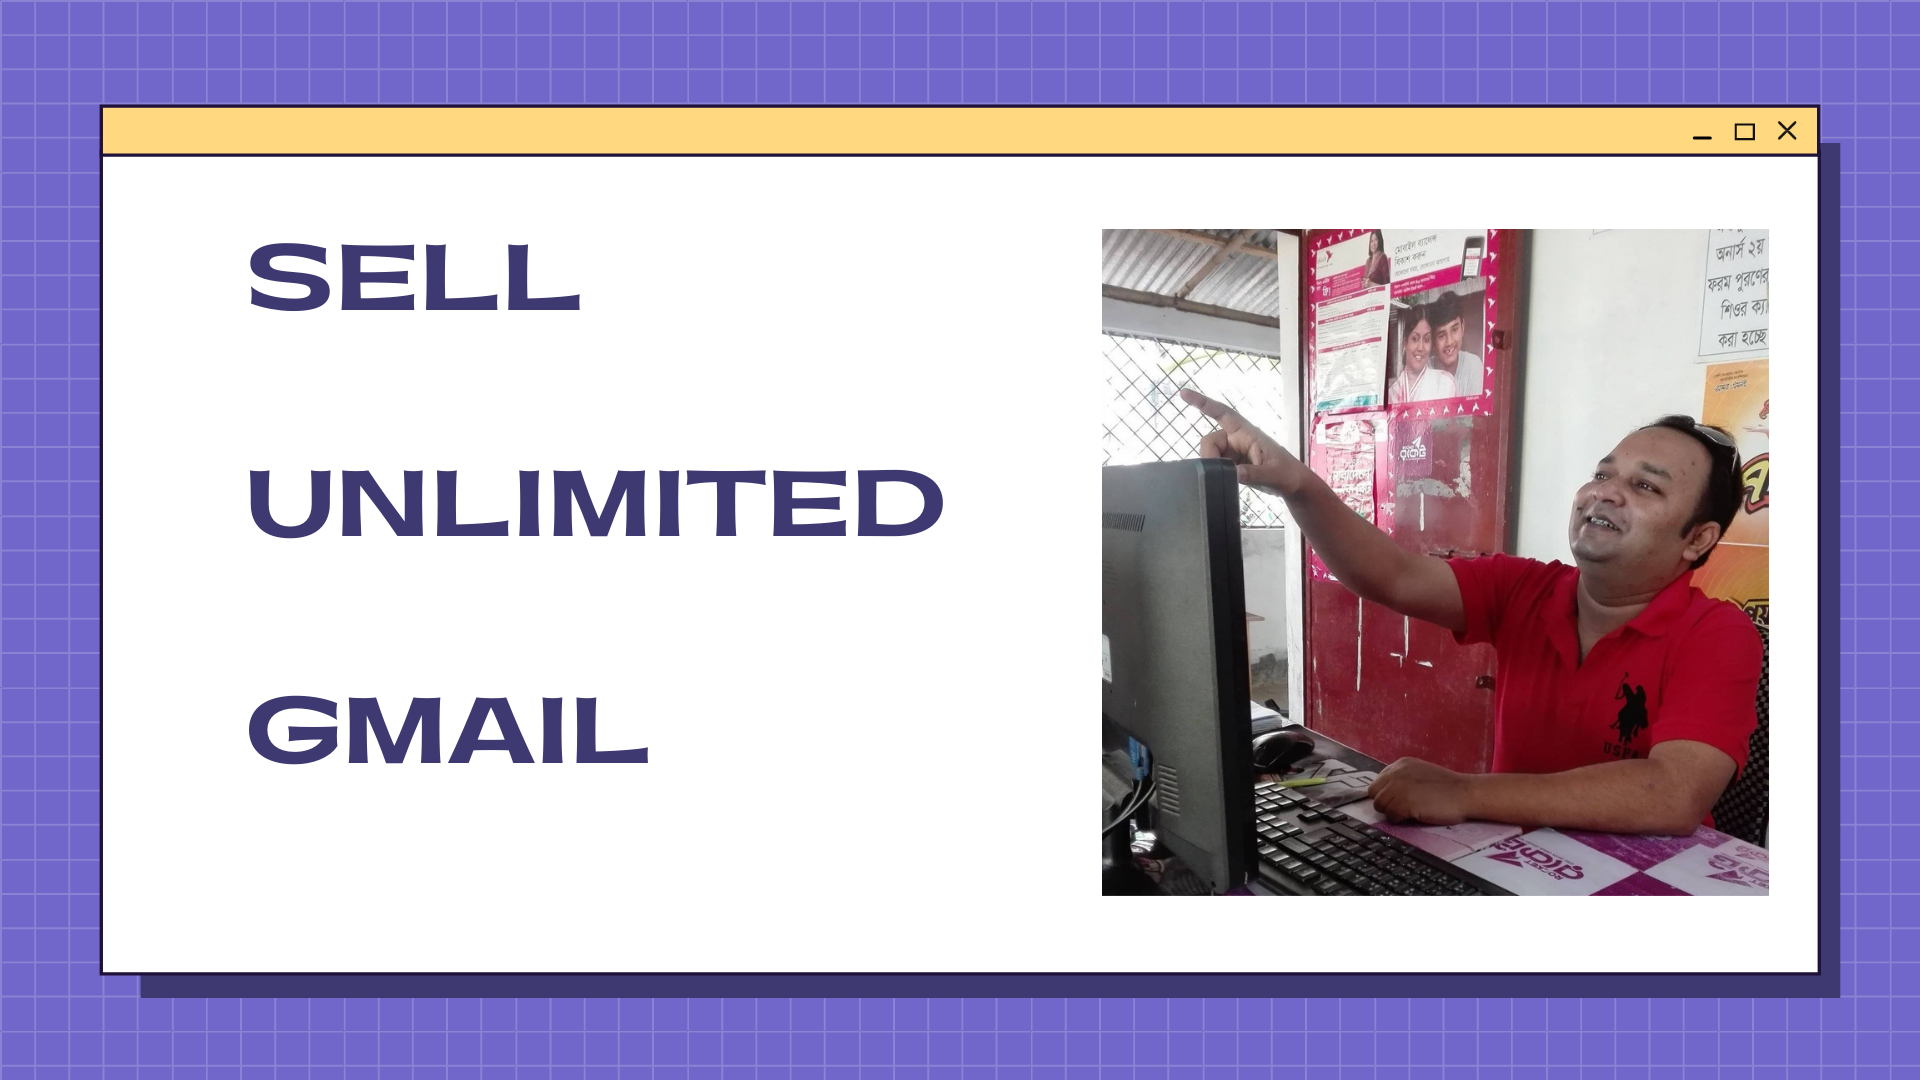 I will create gmail for you within 2 hours